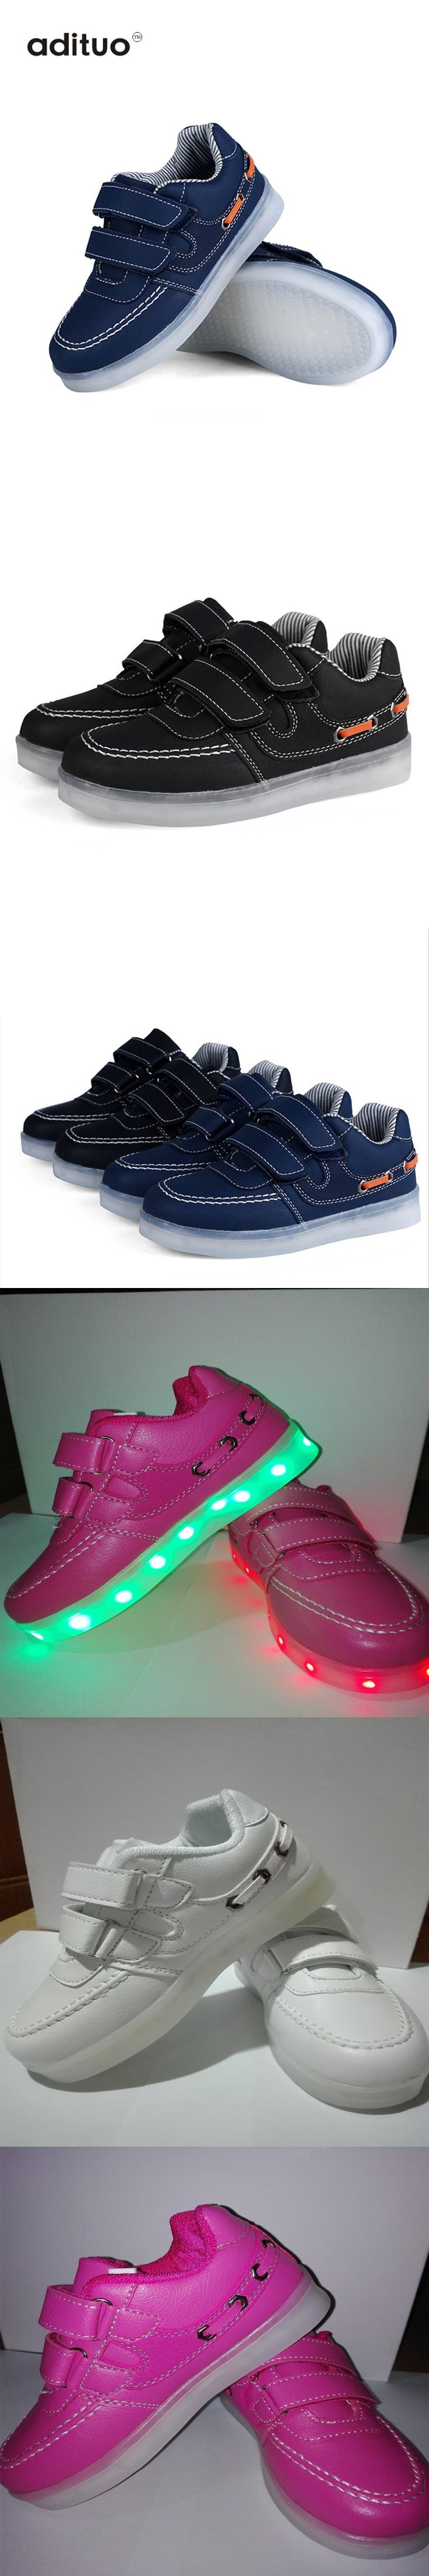 Adituo White Child Lighted Shoes For Girls Boys Colorful Glow Kids Sneakers Charge Luminous Teenage Shoes Chaussure Enfant LED